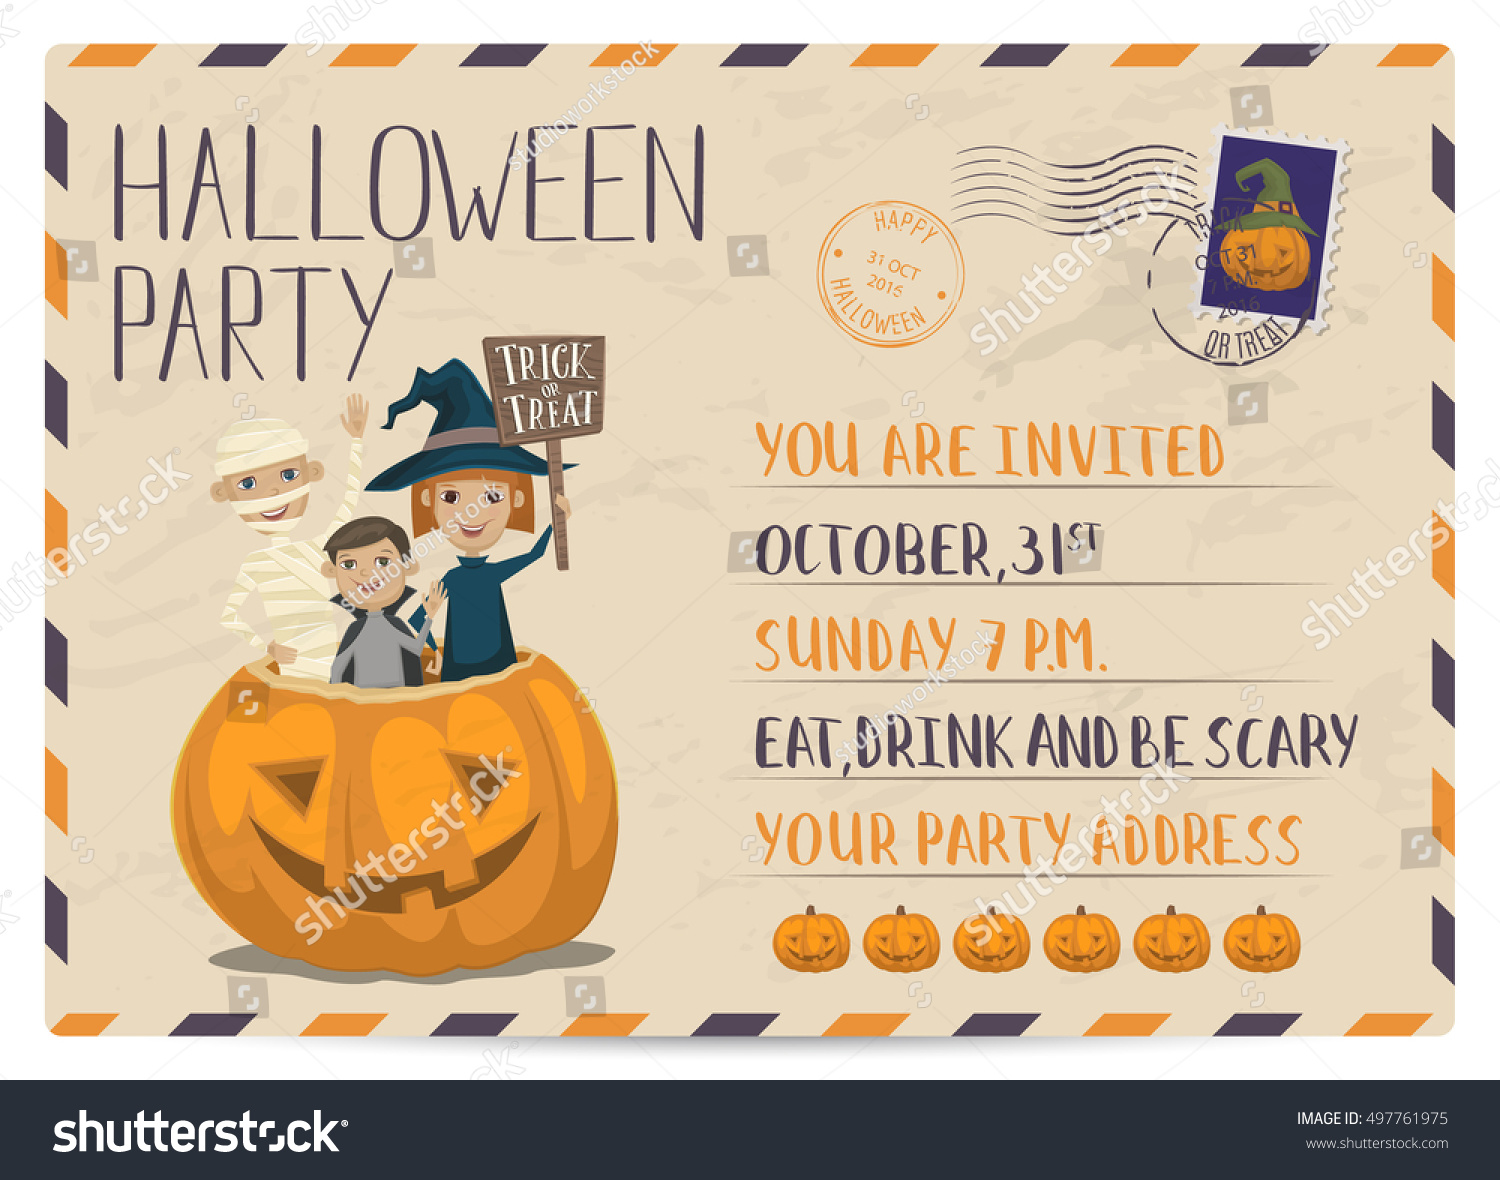 Halloween Party Vintage Postcard Invitation Funny Stock Vector ...